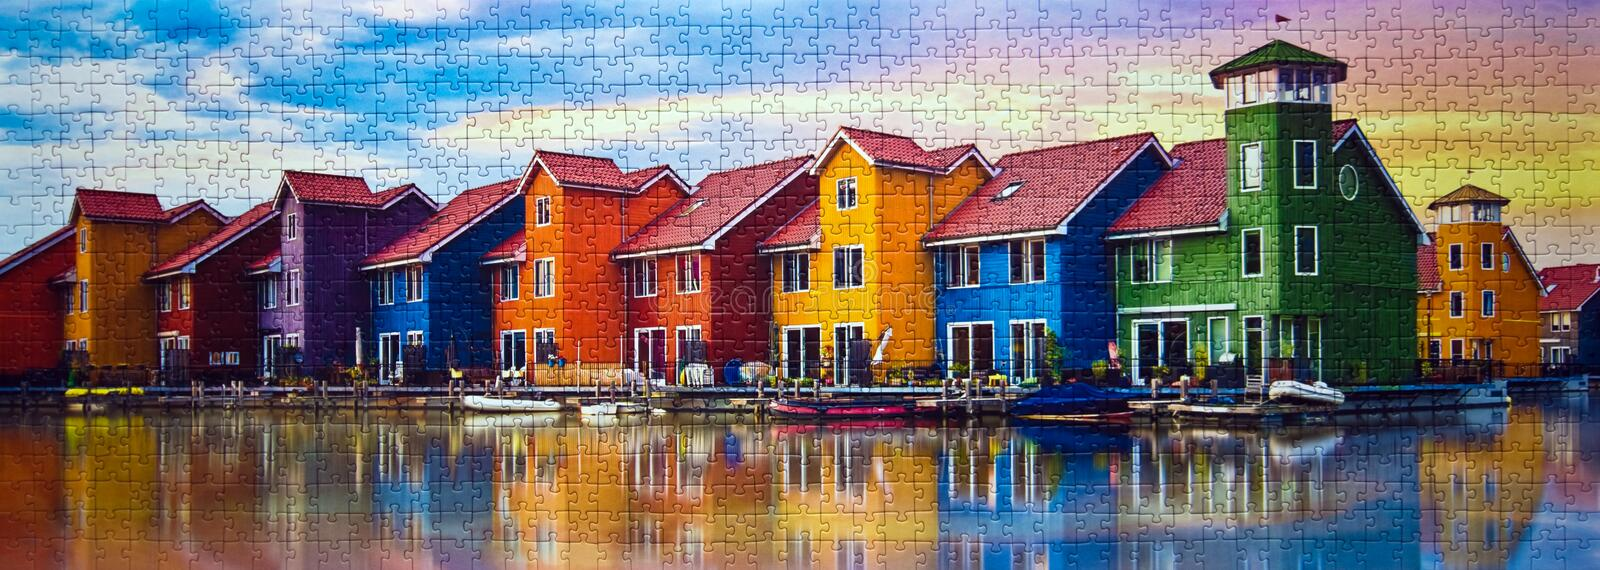 Groningen in Holland colorful houses assembled puzzle image. A commercial toy, Polish manufacturer Trefl puzzle consisting of 1000 elements, assembled puzzle stock photography